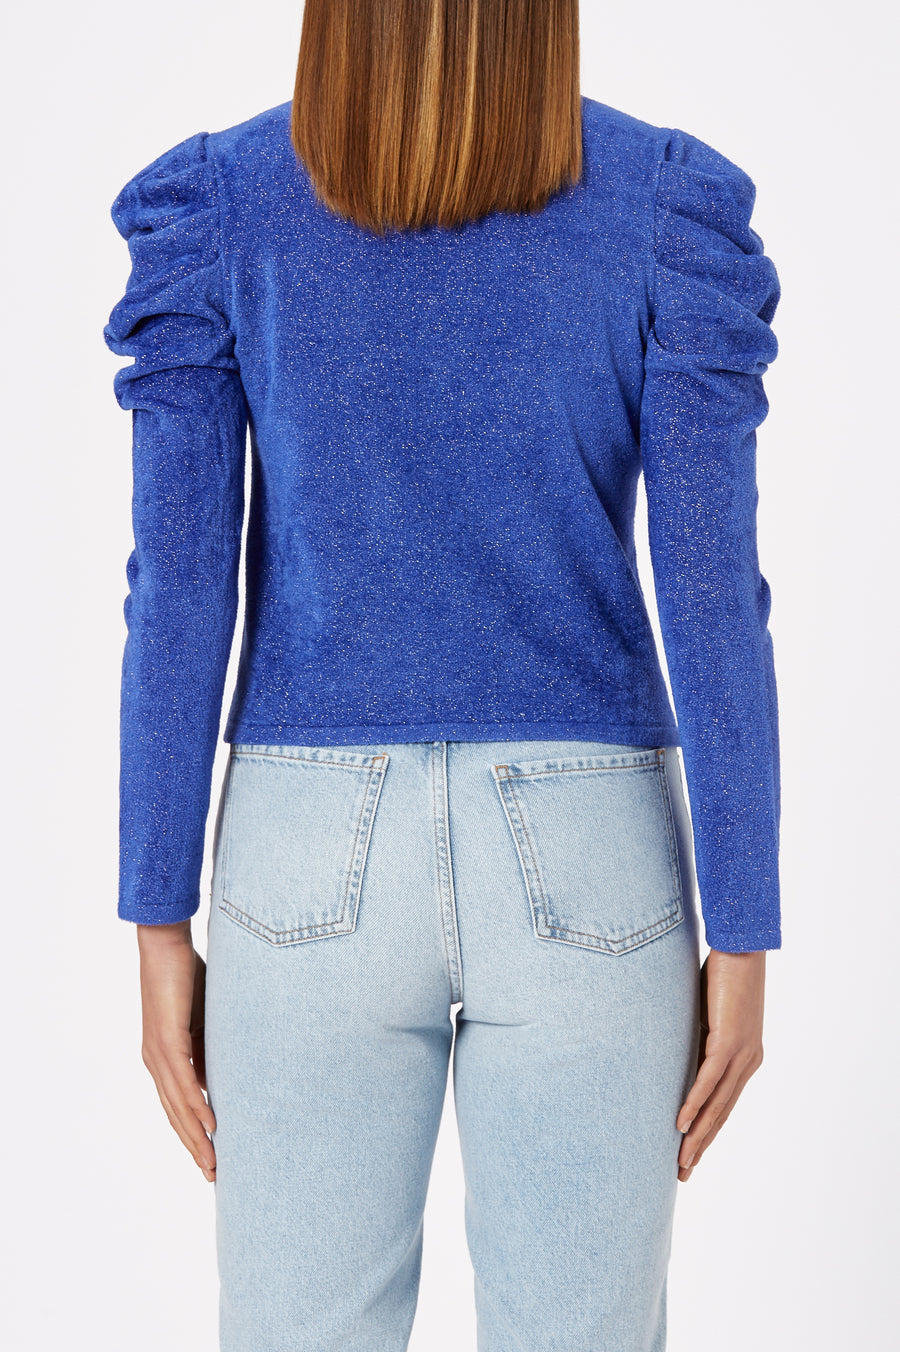 Tinsel Velvet Sweater 12 Blue - Scanlan Theodore